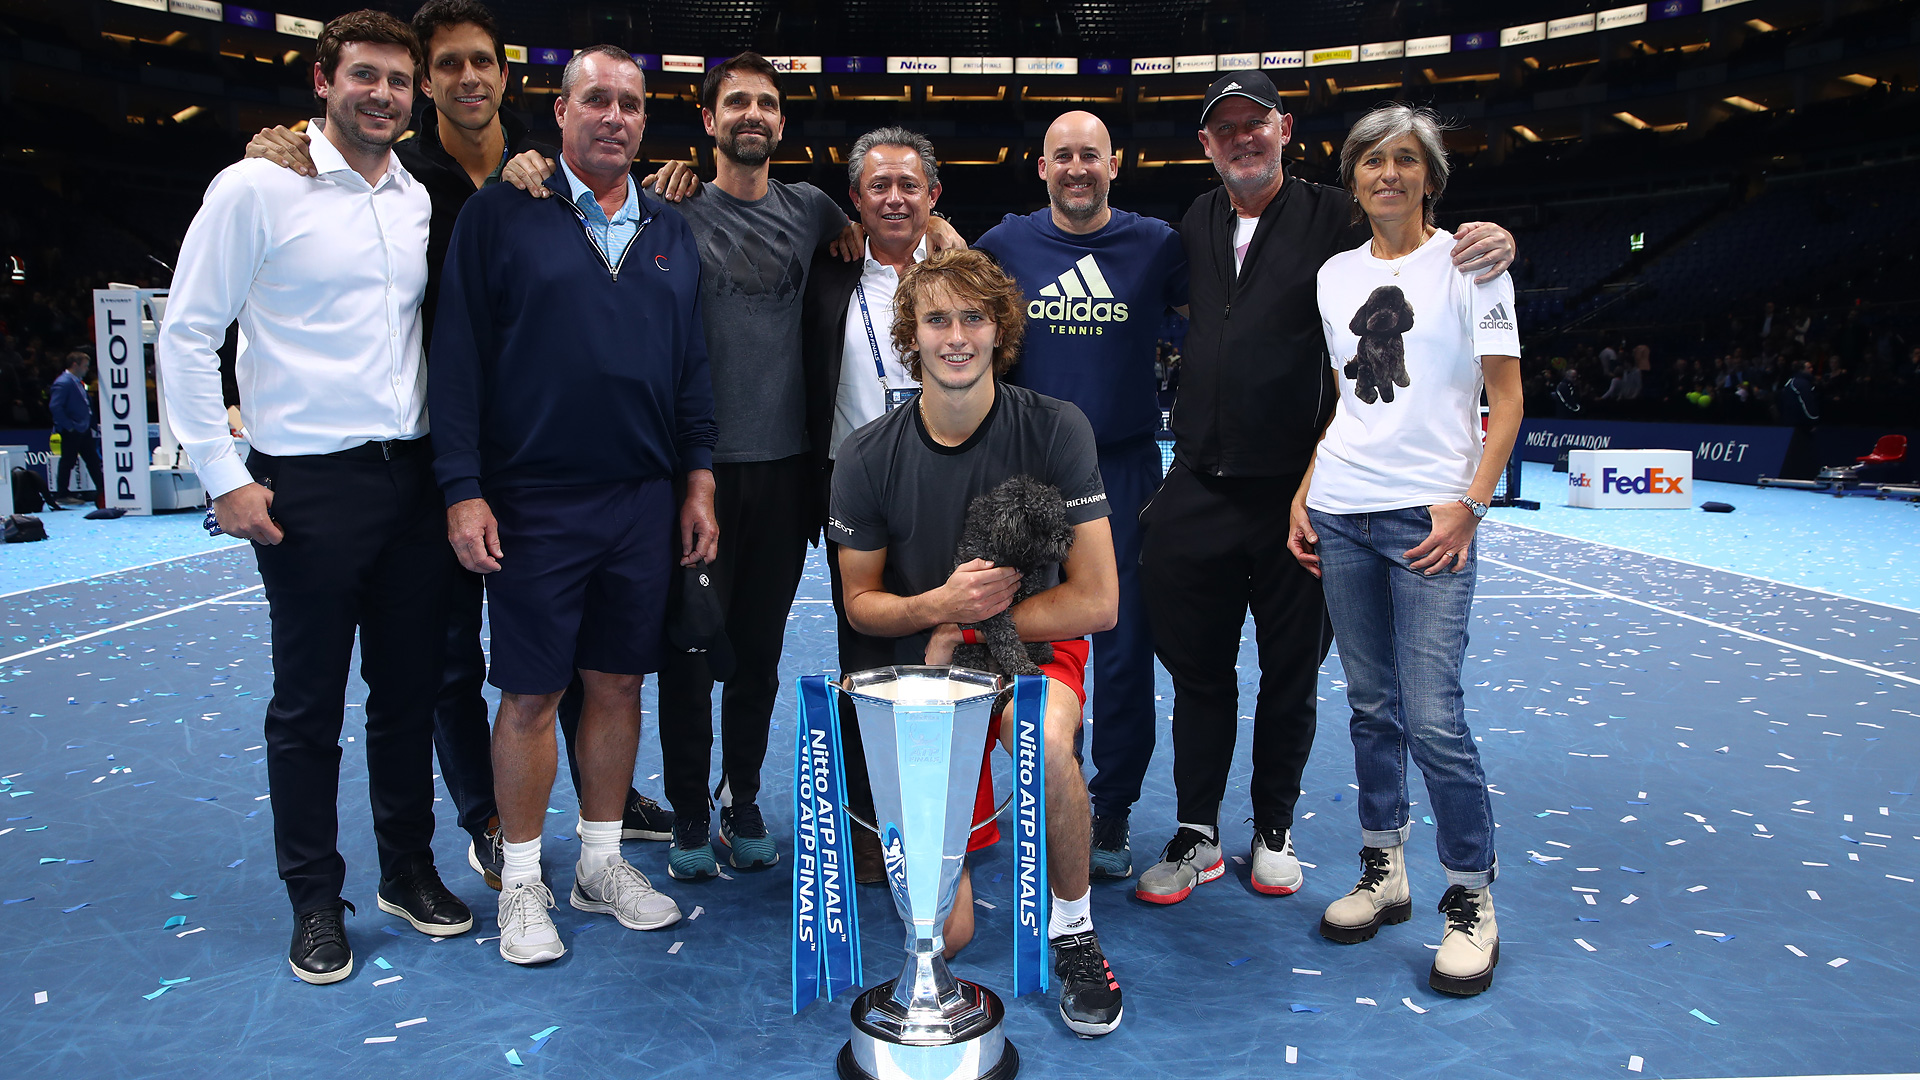 Zverev and his team